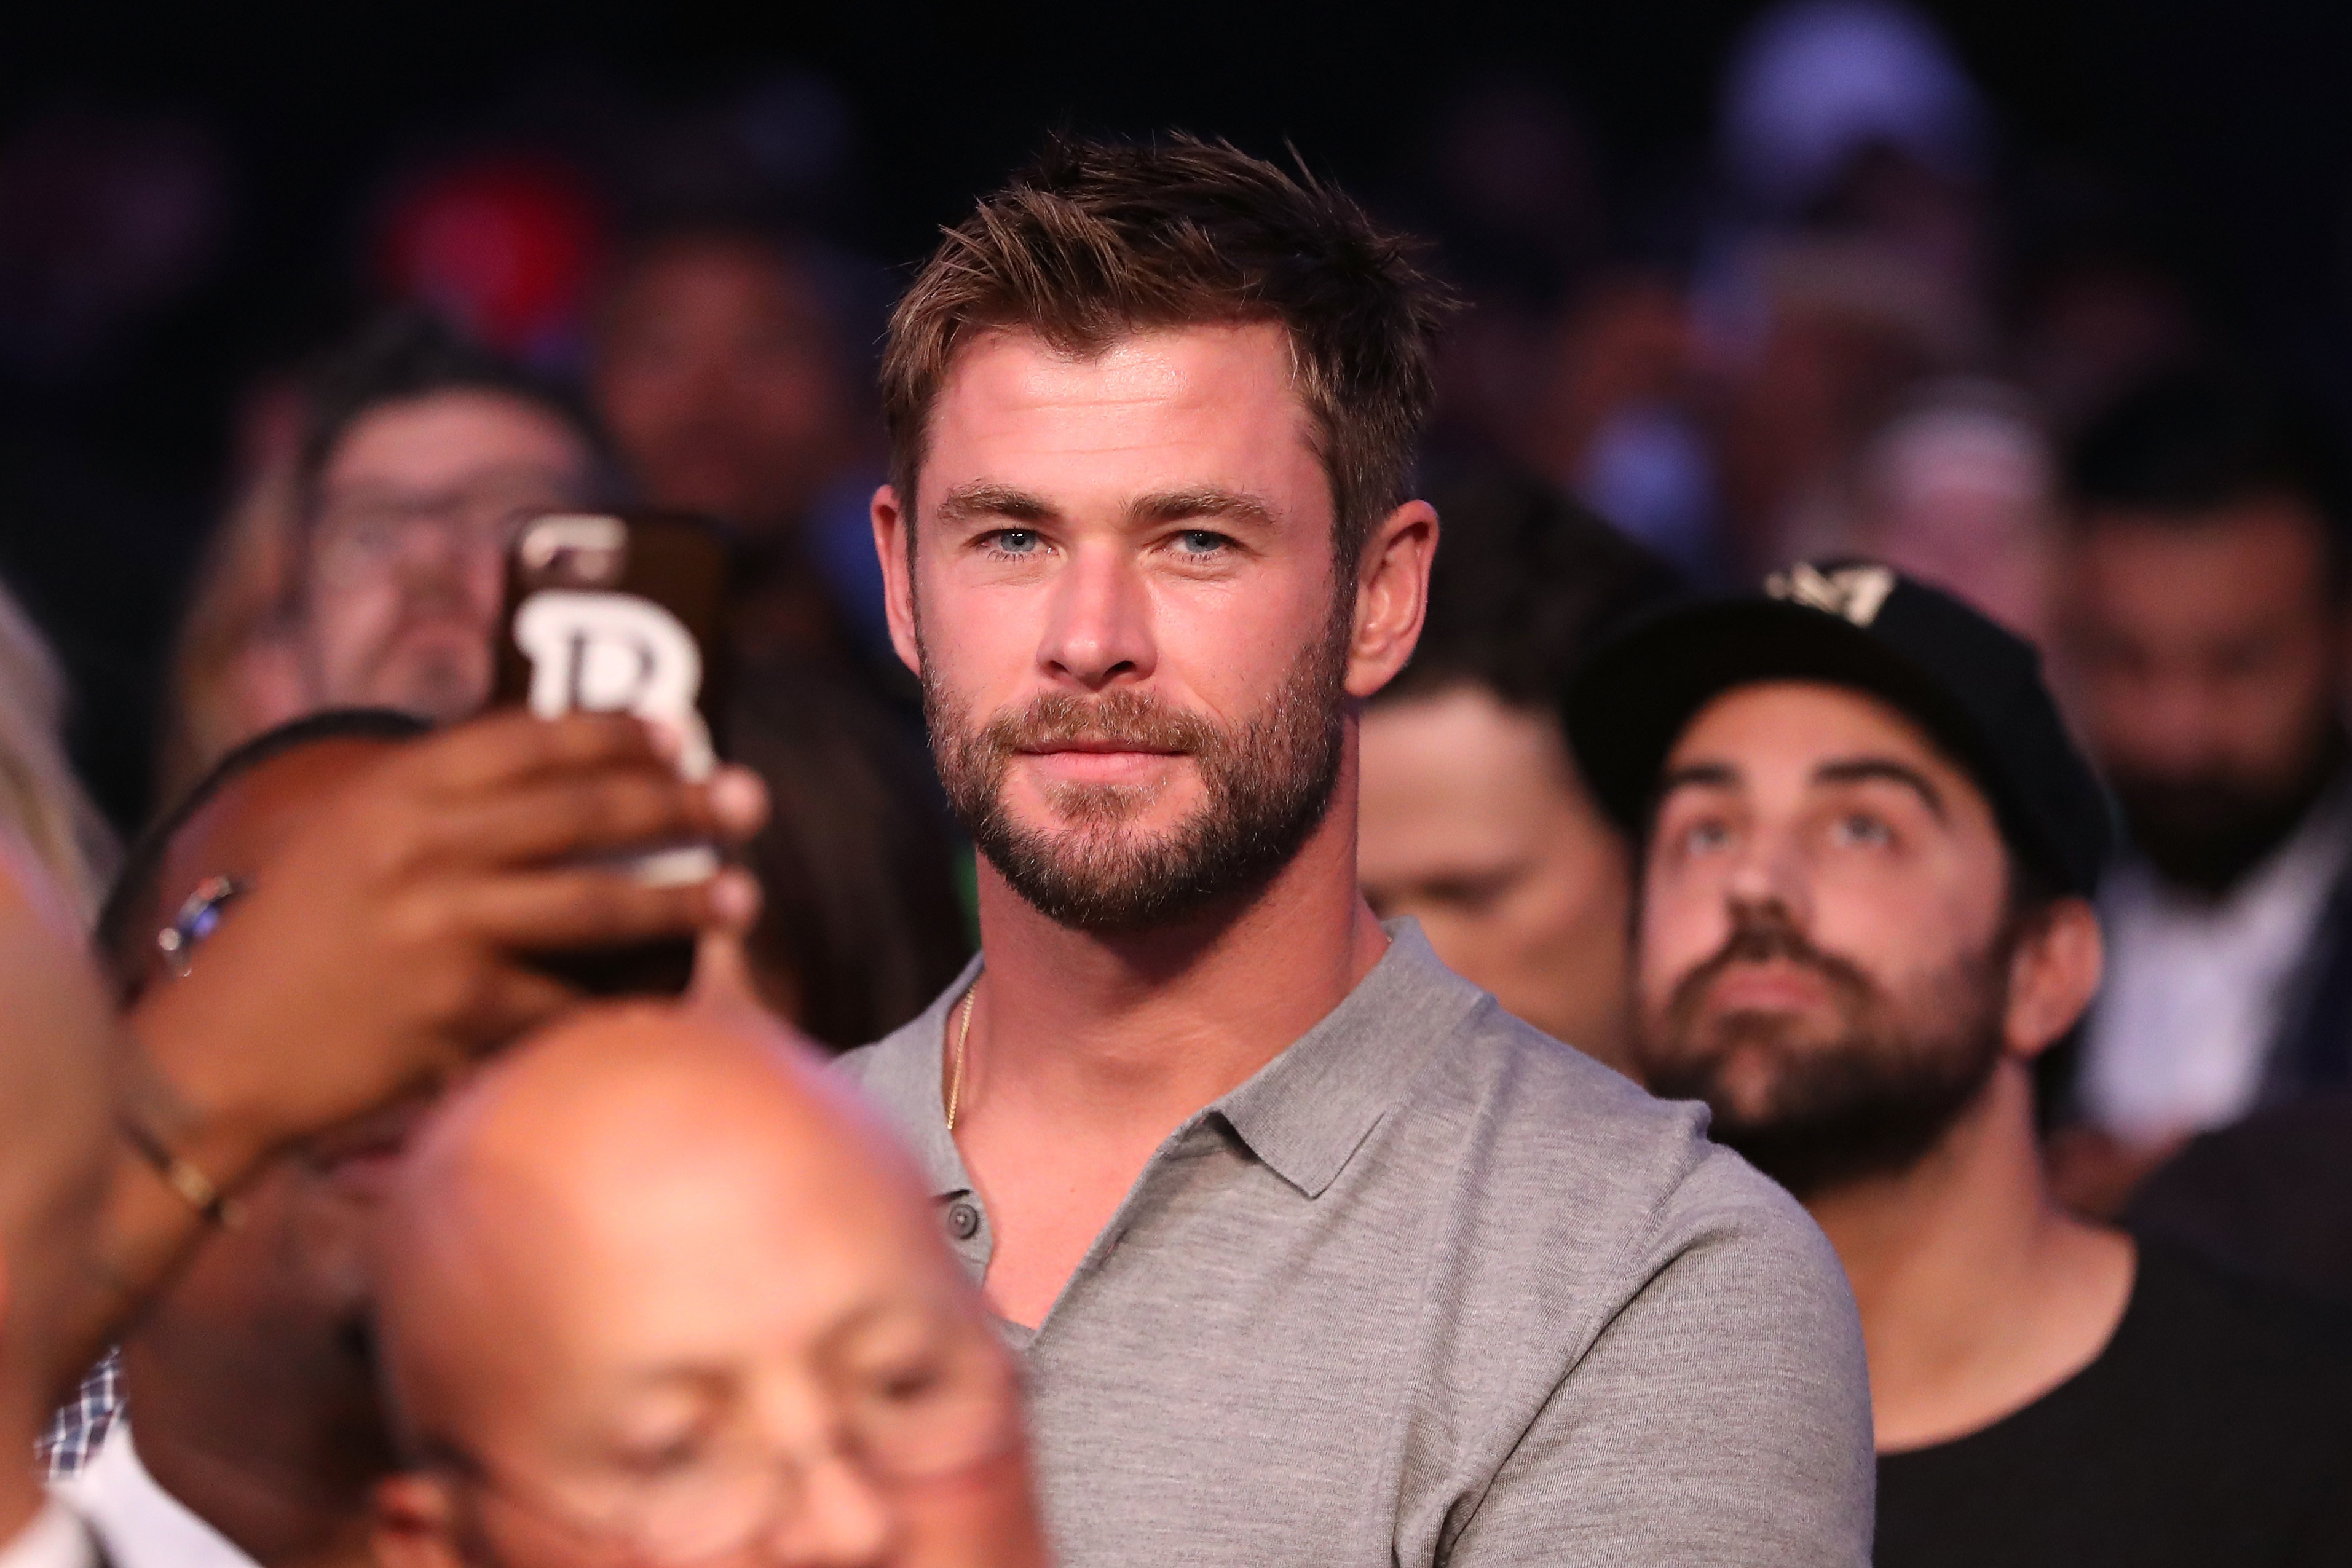 Chris Hemsworth attends the super welterweight boxing match between Floyd Mayweather Jr. and Conor McGregor at T Mobile Arena in Las Vegas on Aug. 26, 2017.